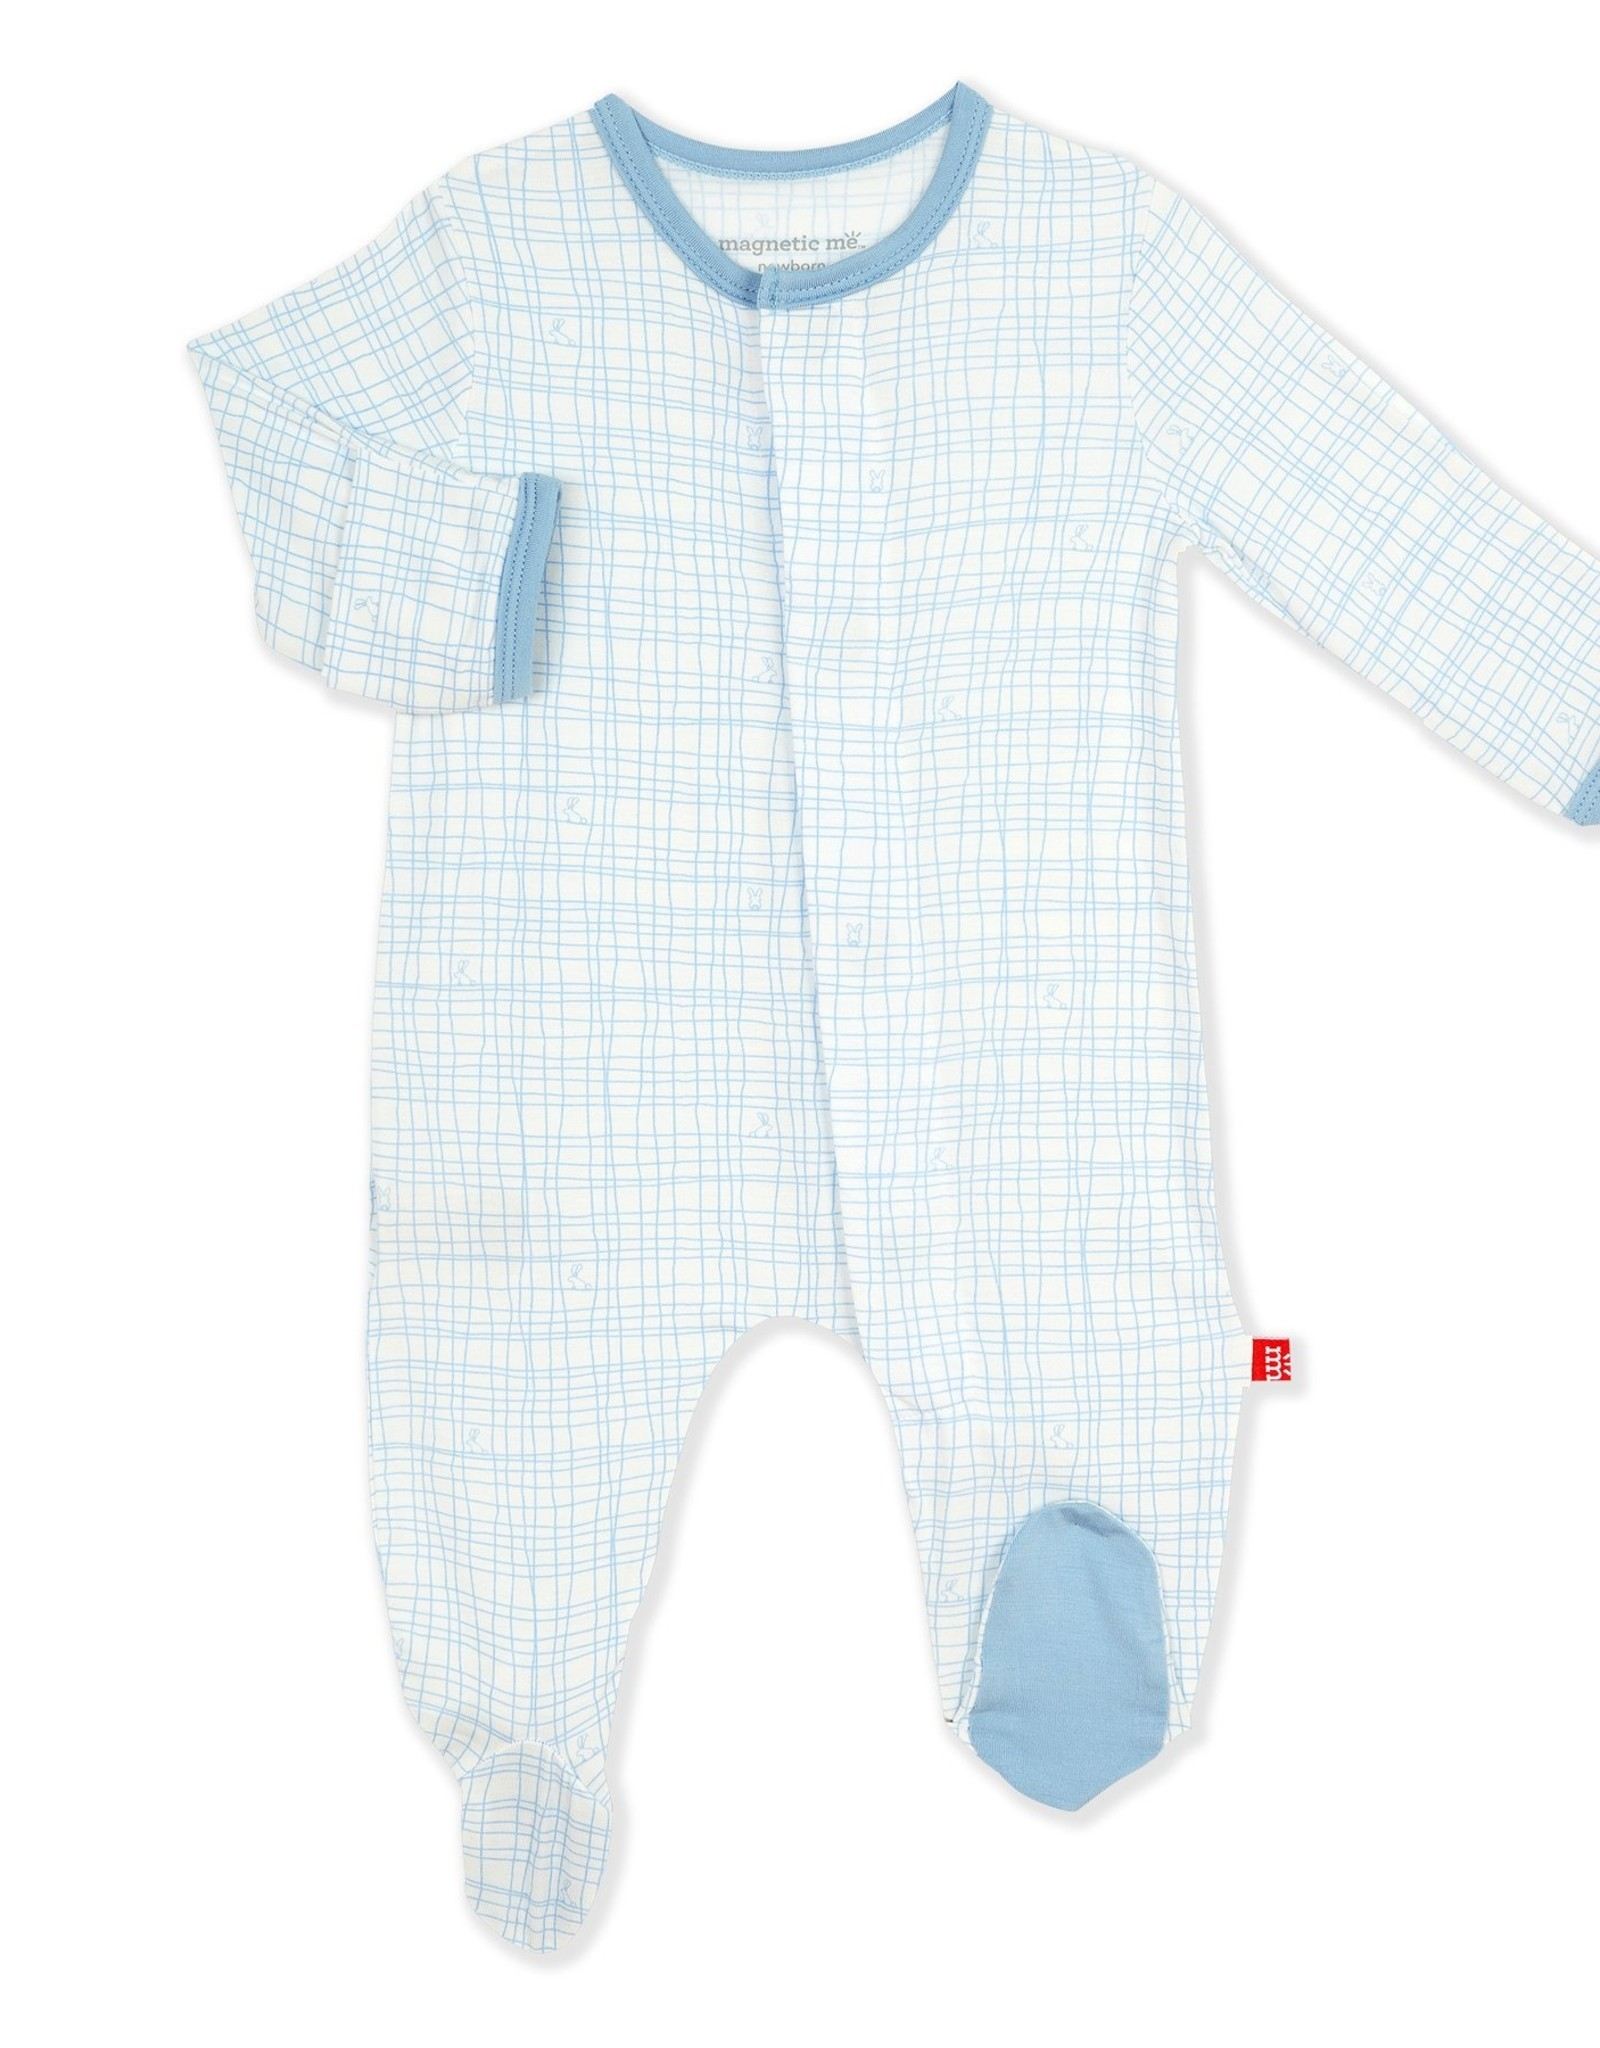 Magnetic Me Greenwich Plaid Magnetic Footie